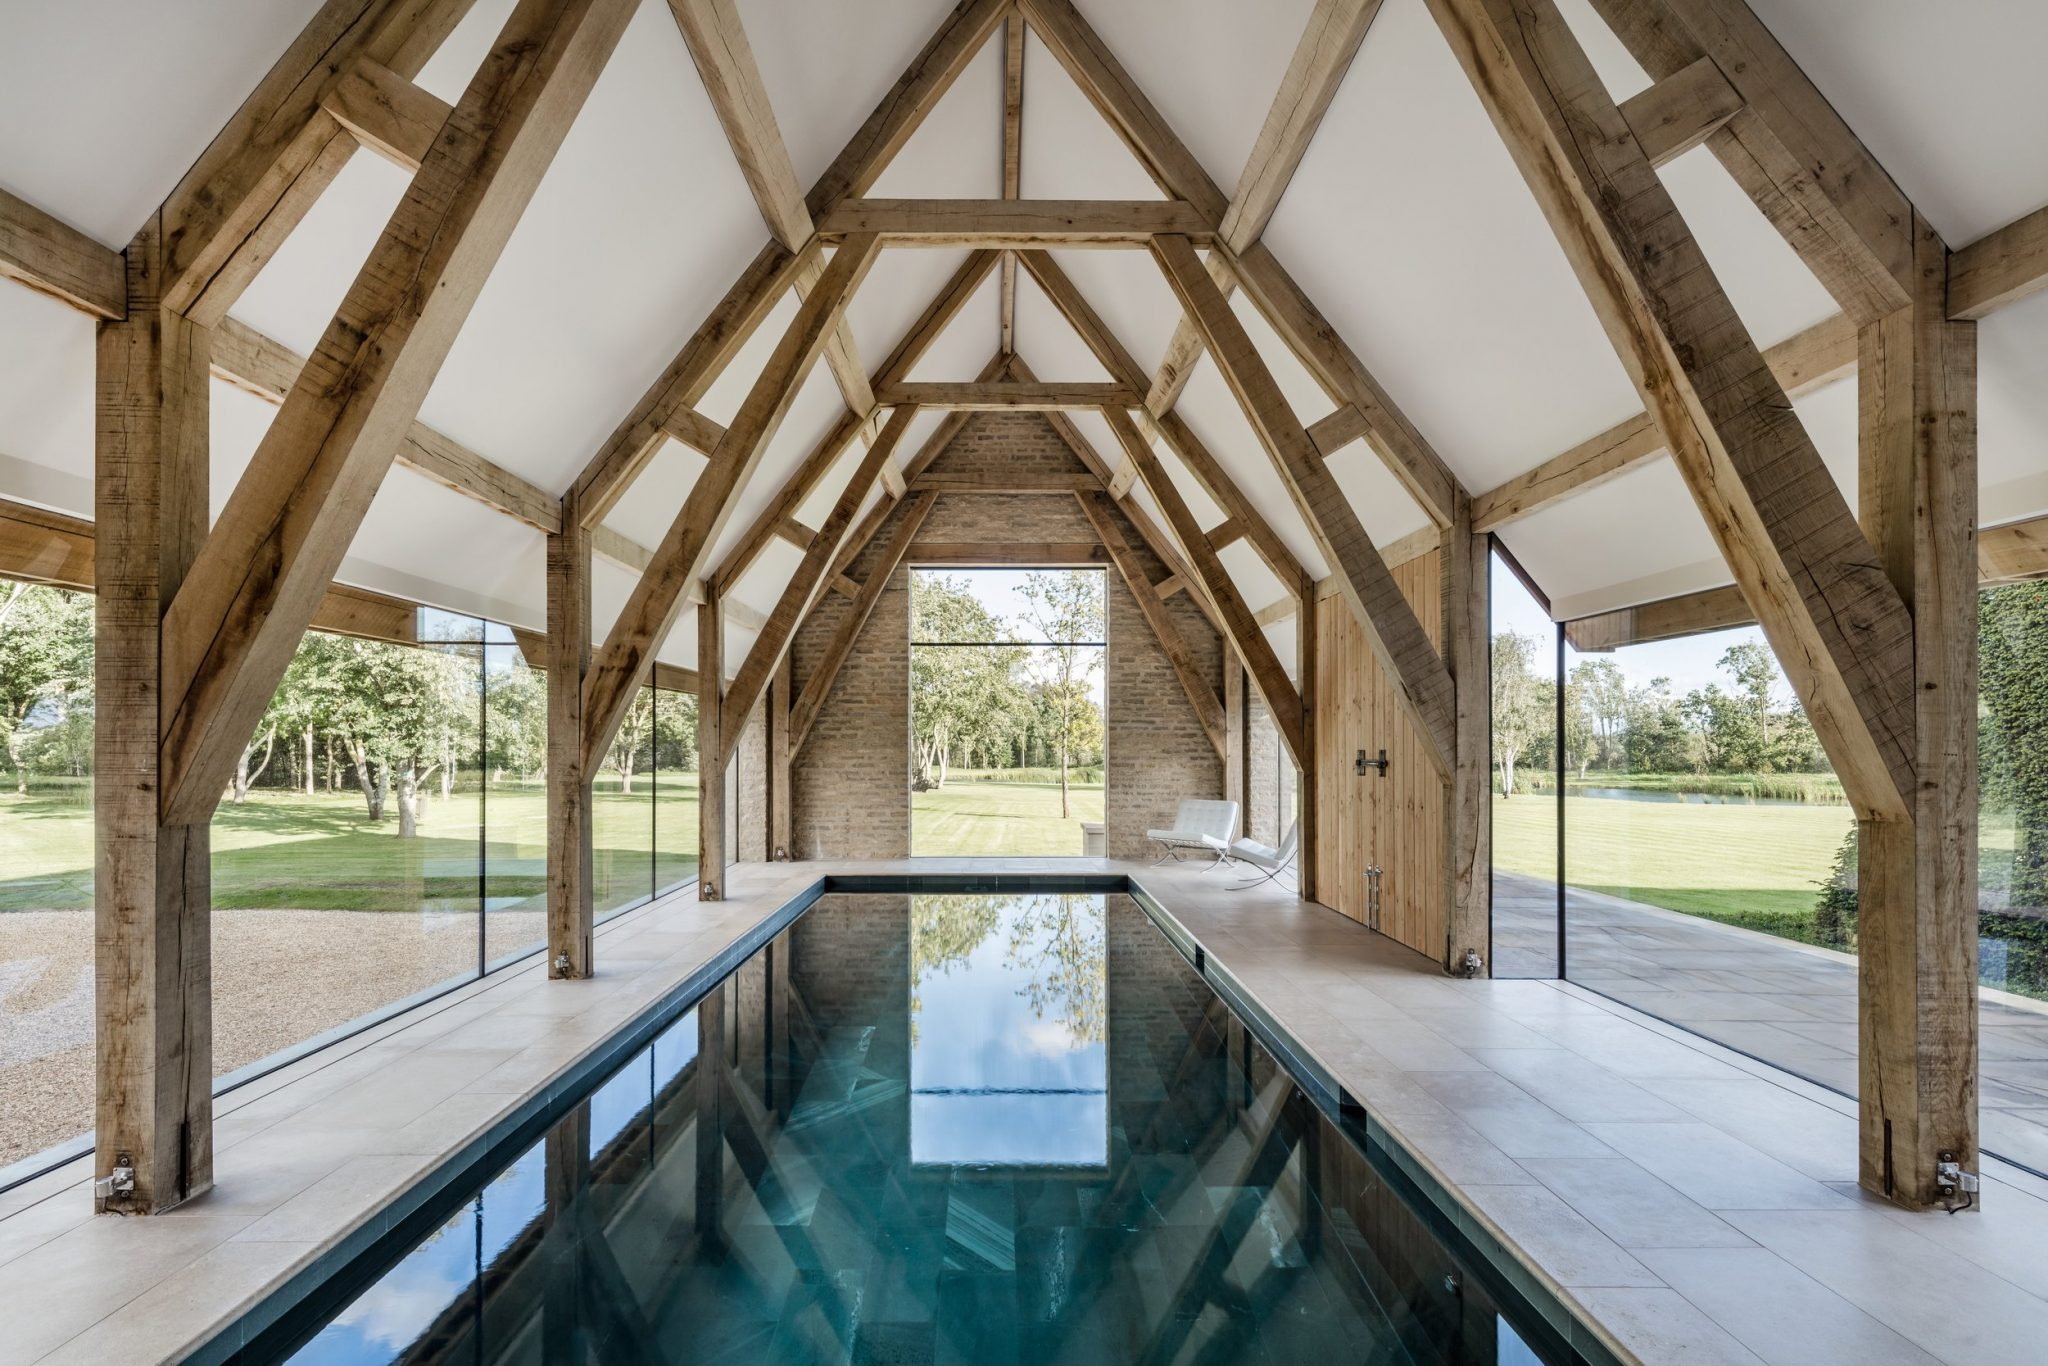 Georgian Manor House Oxfordshire Interior Design Image Gallery - 09 Swimming Pool